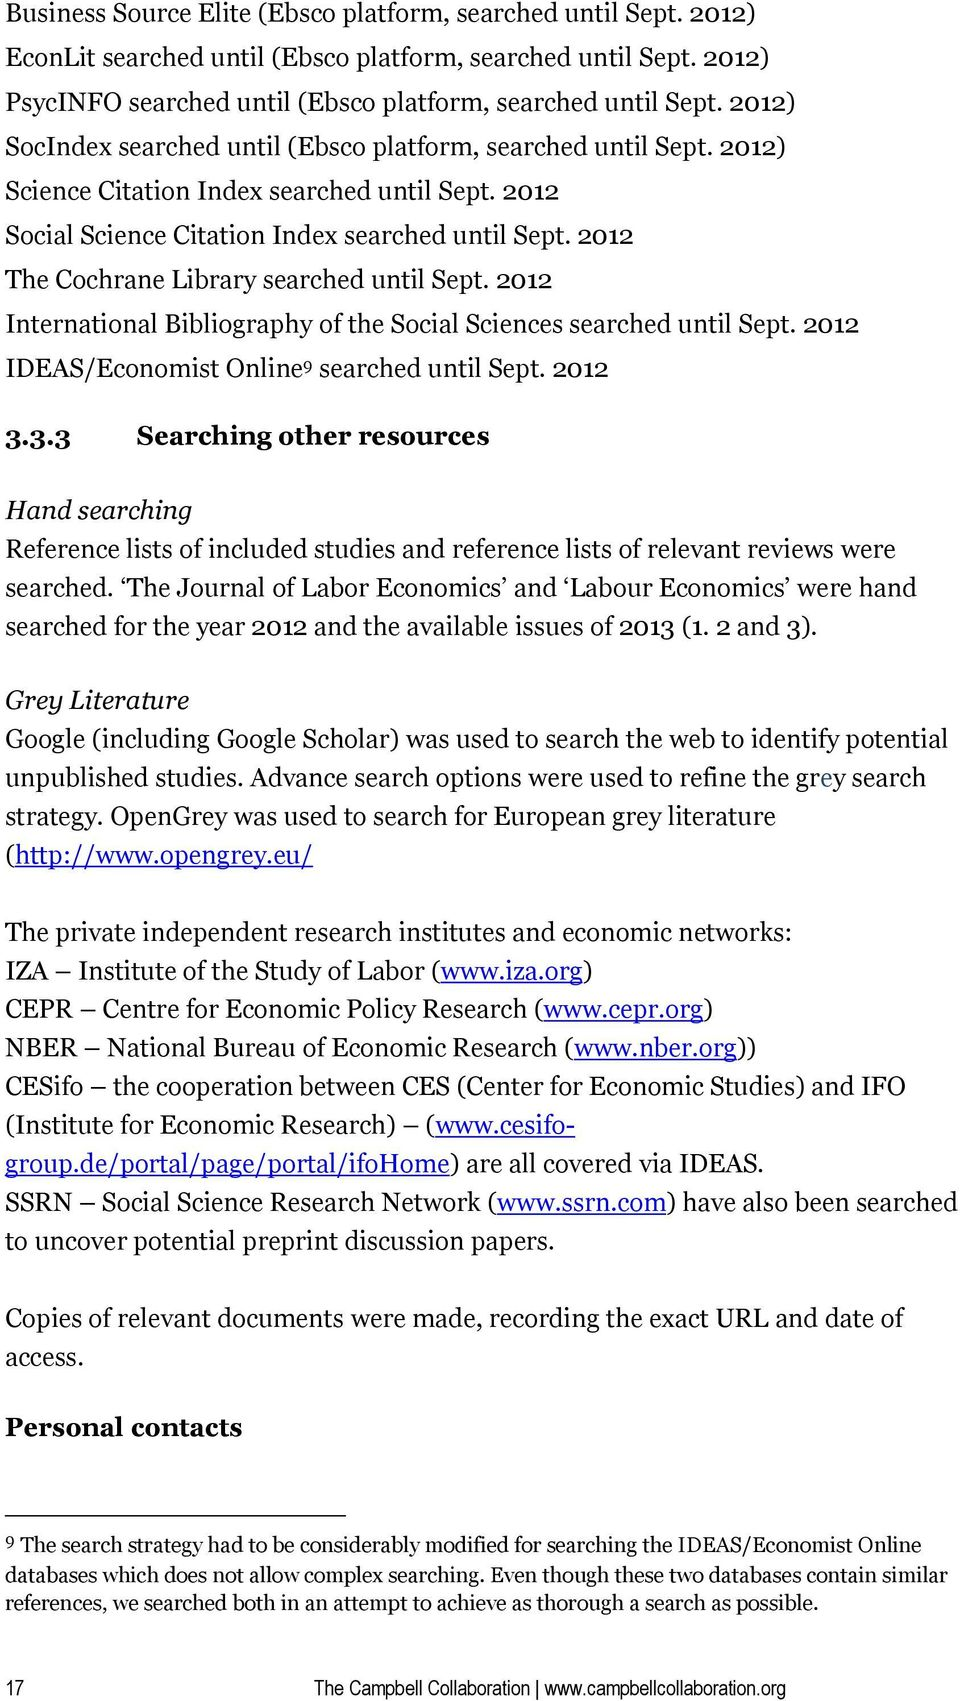 2012 The Cochrane Library searched until Sept. 2012 International Bibliography of the Social Sciences searched until Sept. 2012 IDEAS/Economist Online 9 searched until Sept. 2012 3.